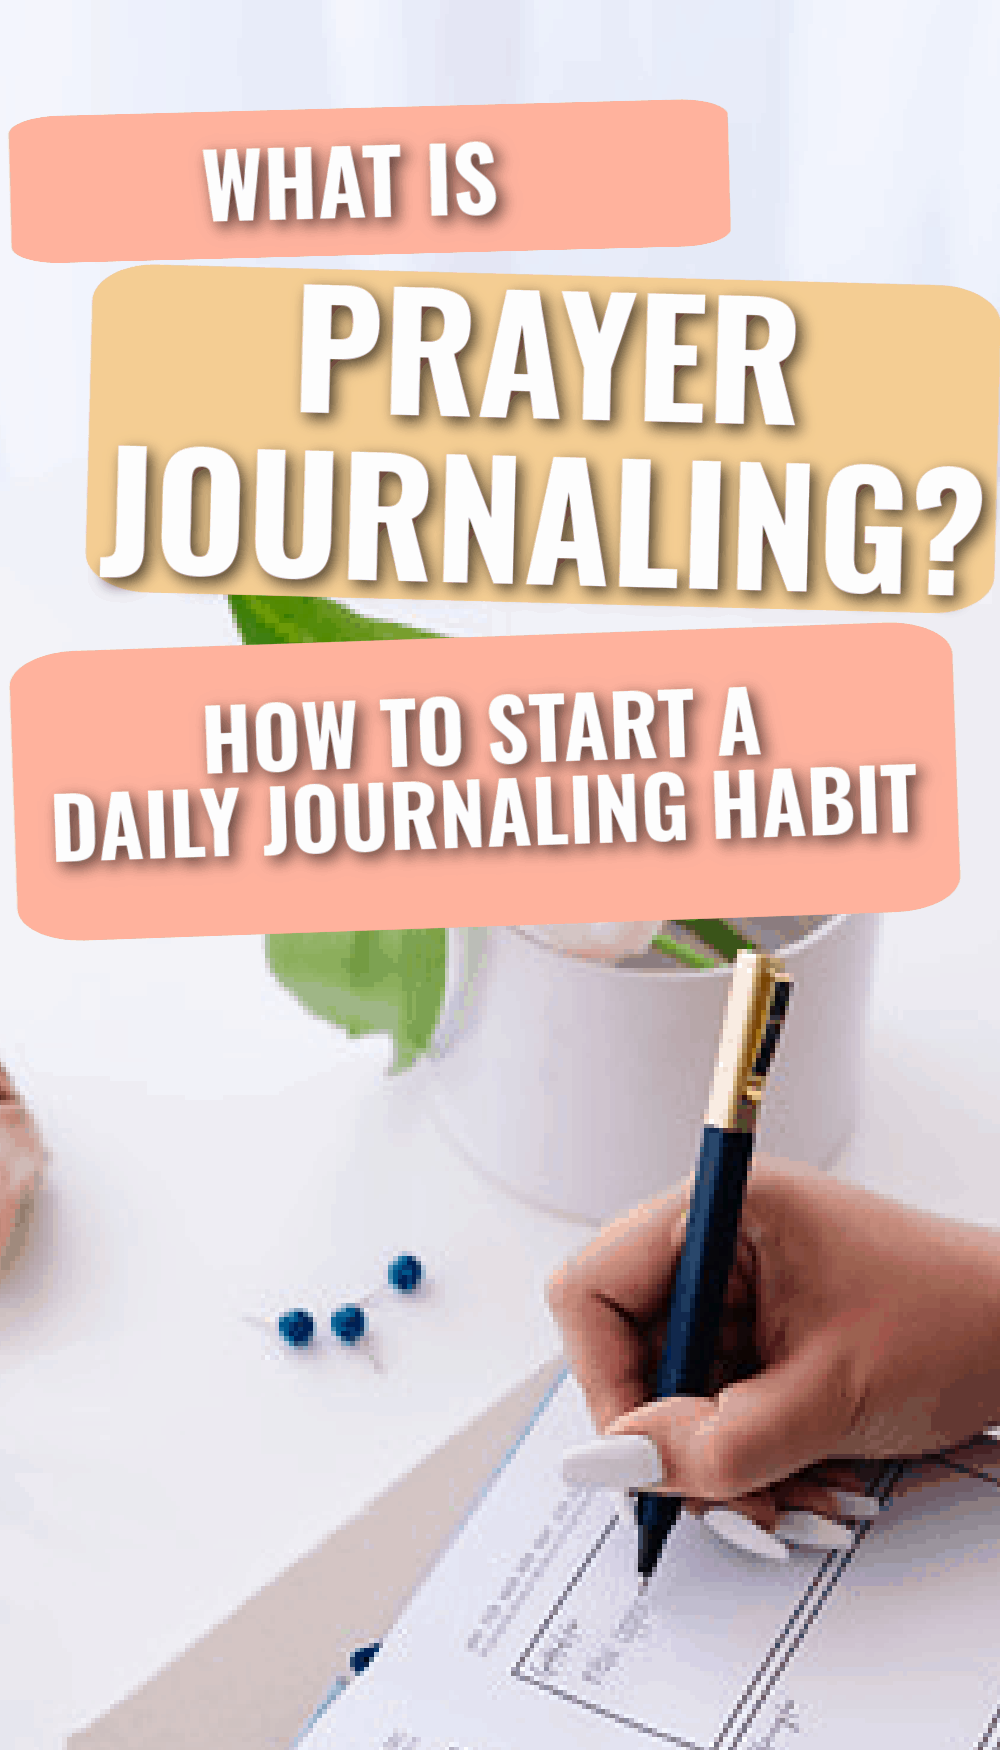 Title- What is prayer journaling and how to start a daily journaling habit? Picture- woman writing in a prayer journal